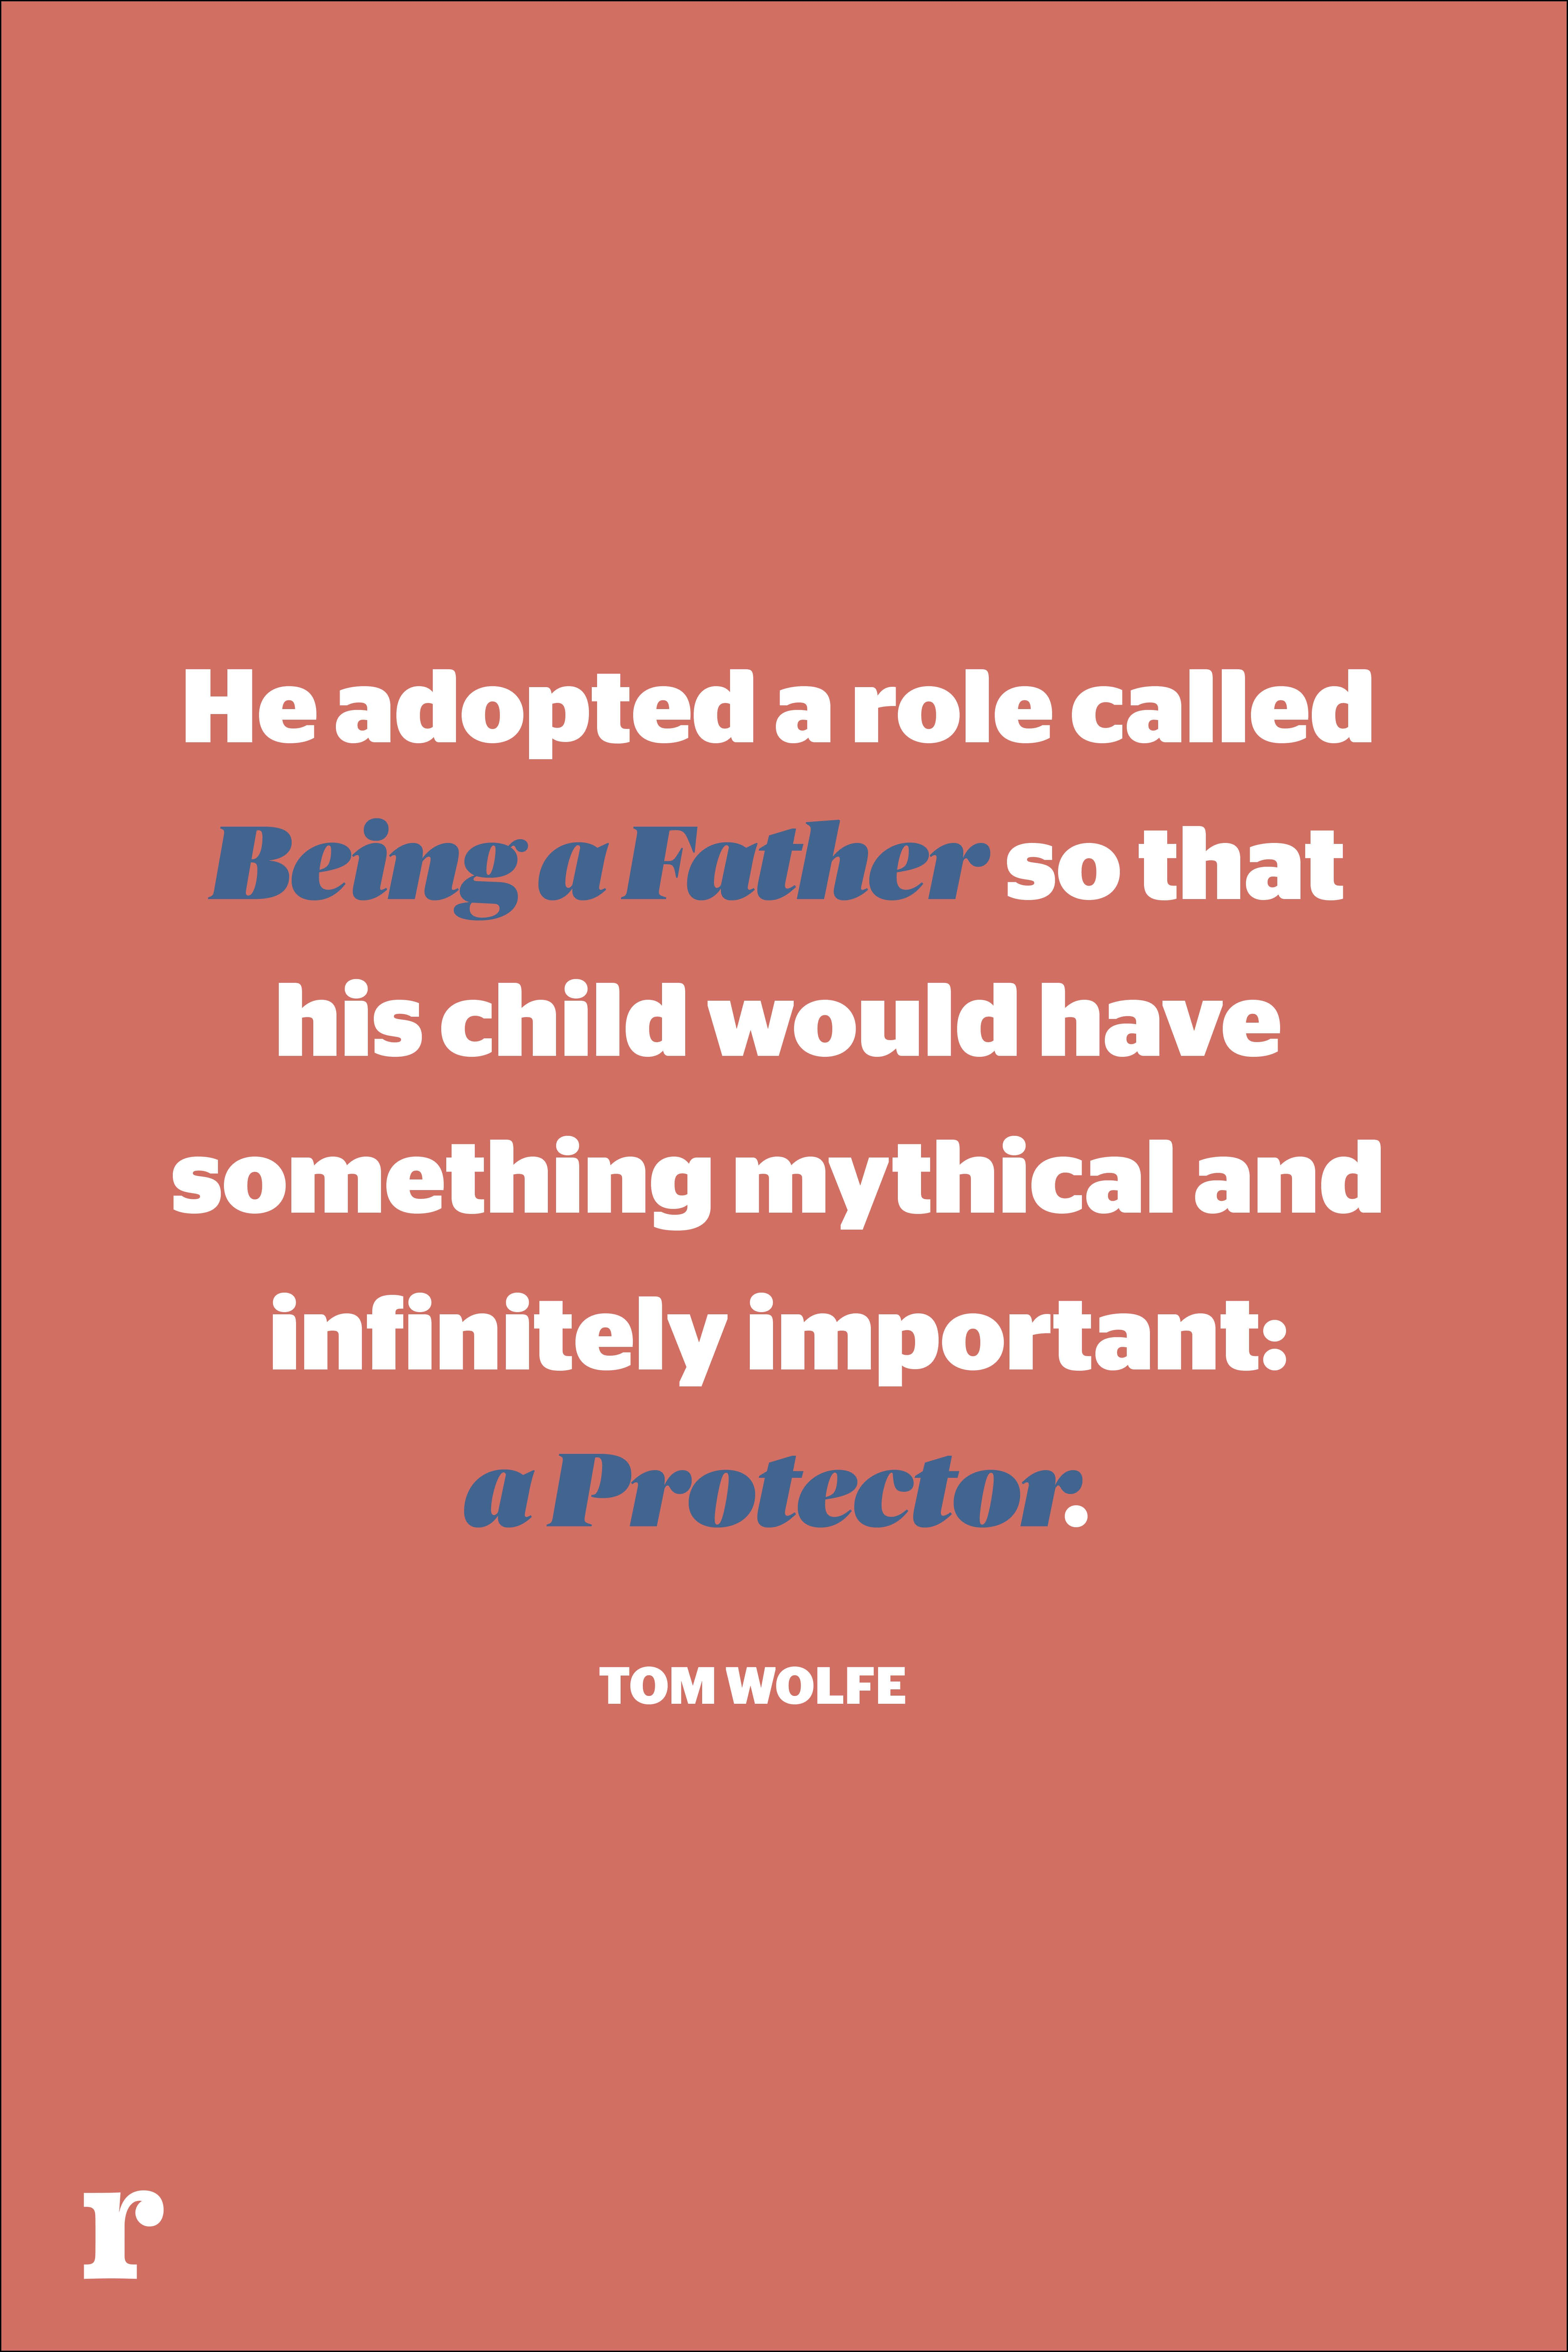 Image of: Sayings Tom Wolfe Fathers Day Quote Shutterfly 15 Best Fathers Day Quotes To Share With Dad Meaningful